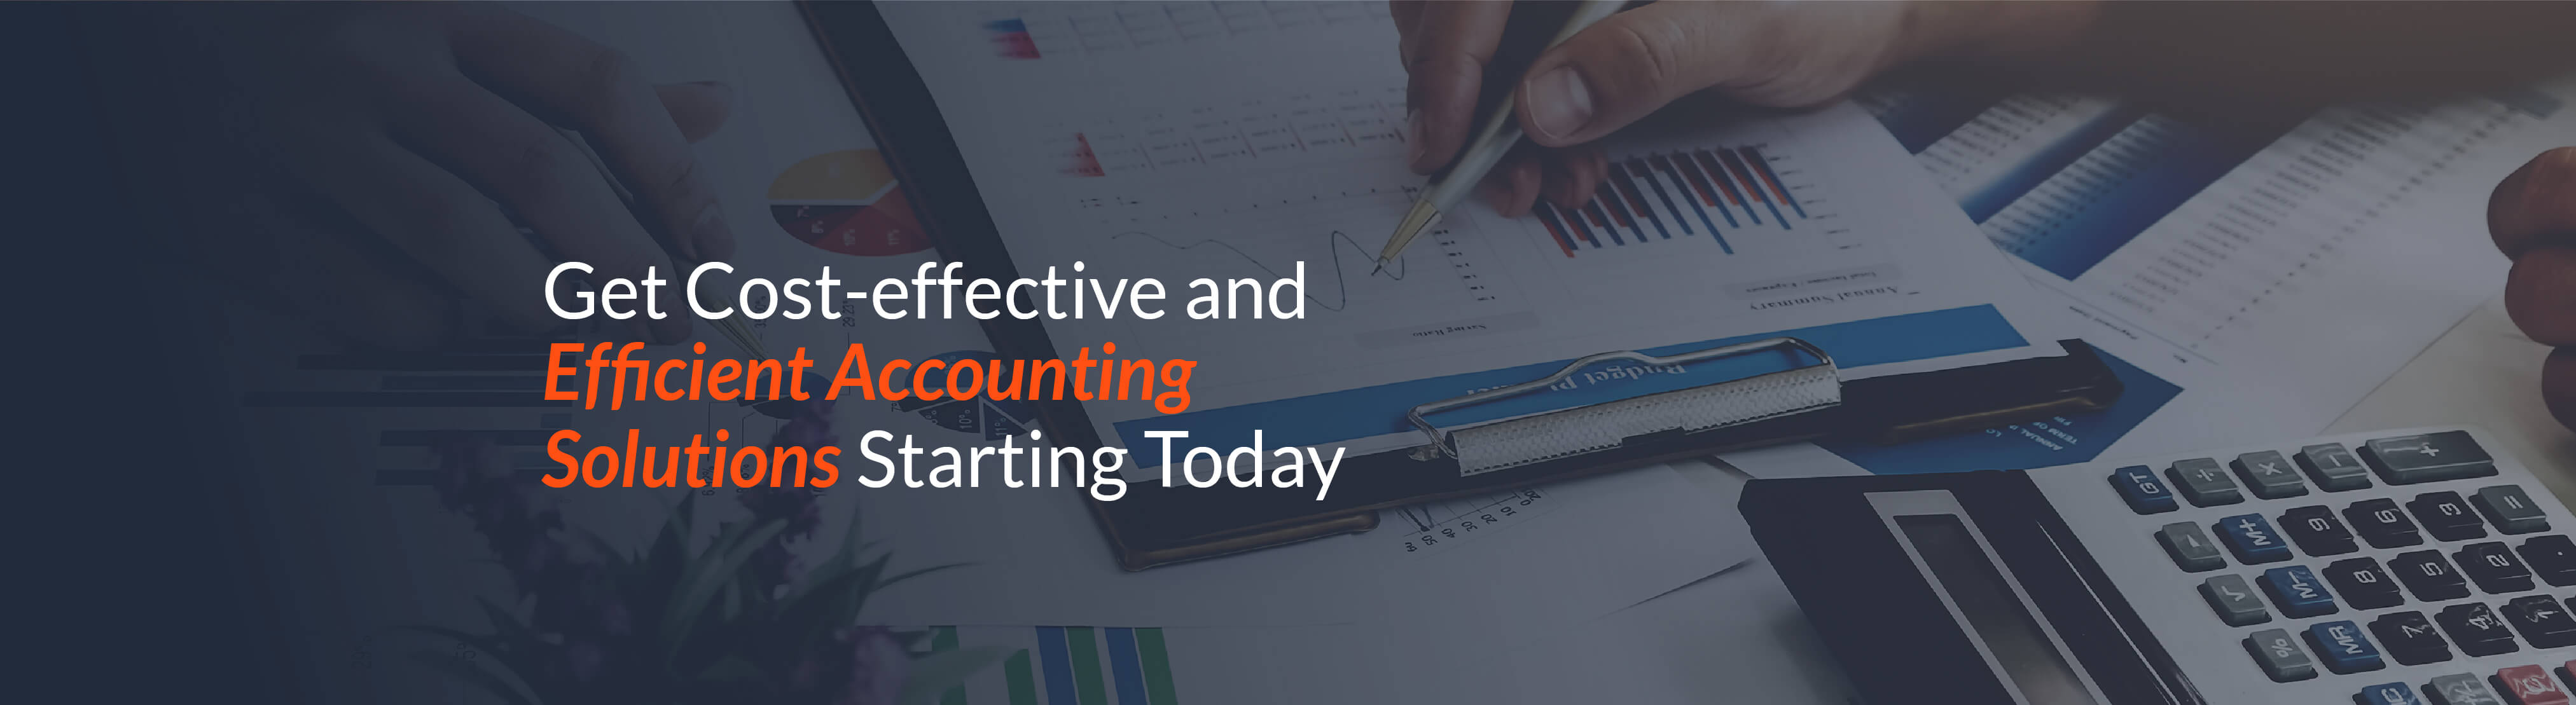 Get cost-effective and efficient account solutions starting today